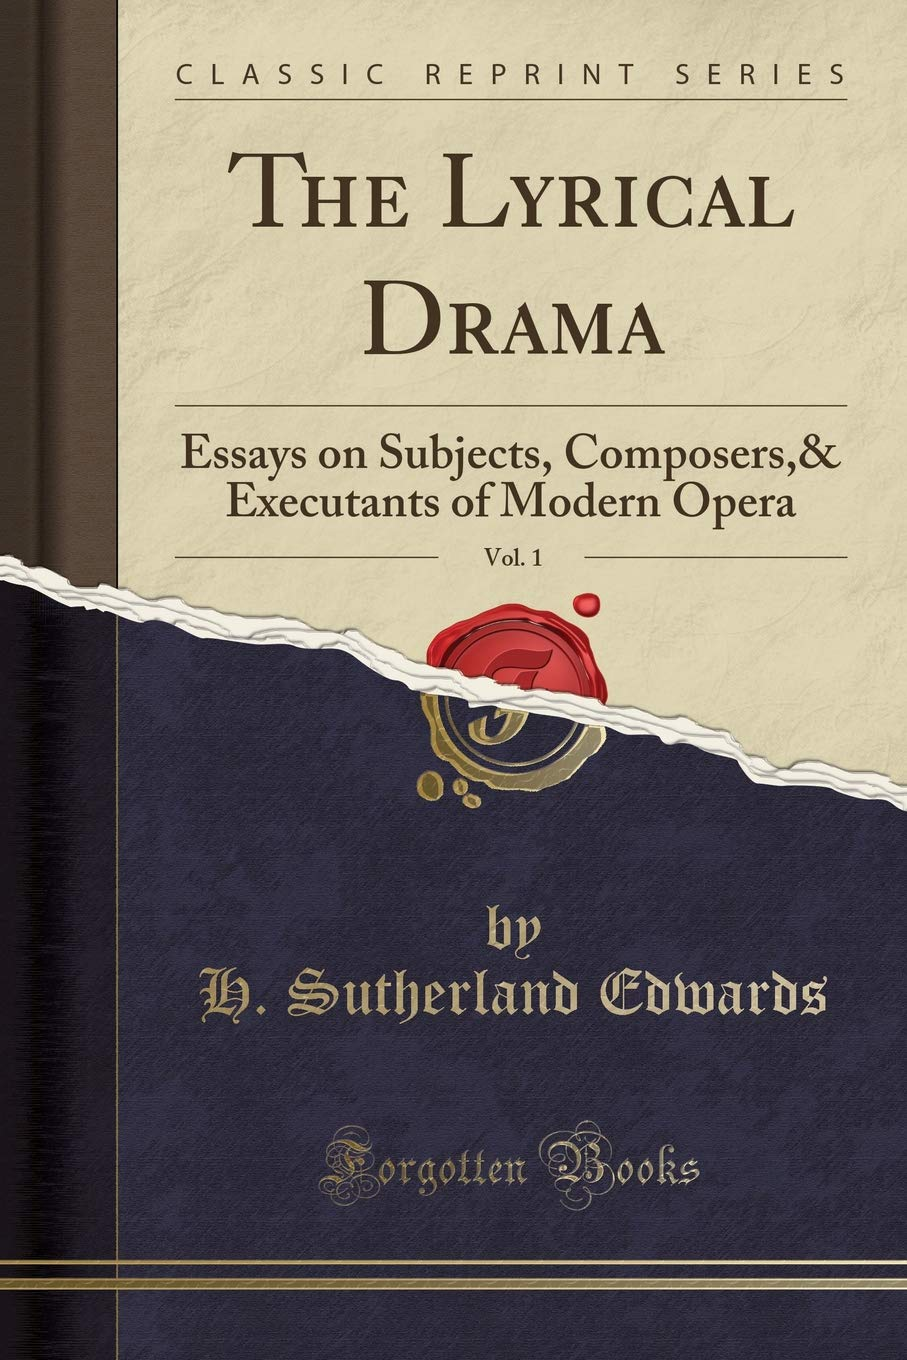 The Lyrical Drama, Vol  1: Essays on Subjects, Composers